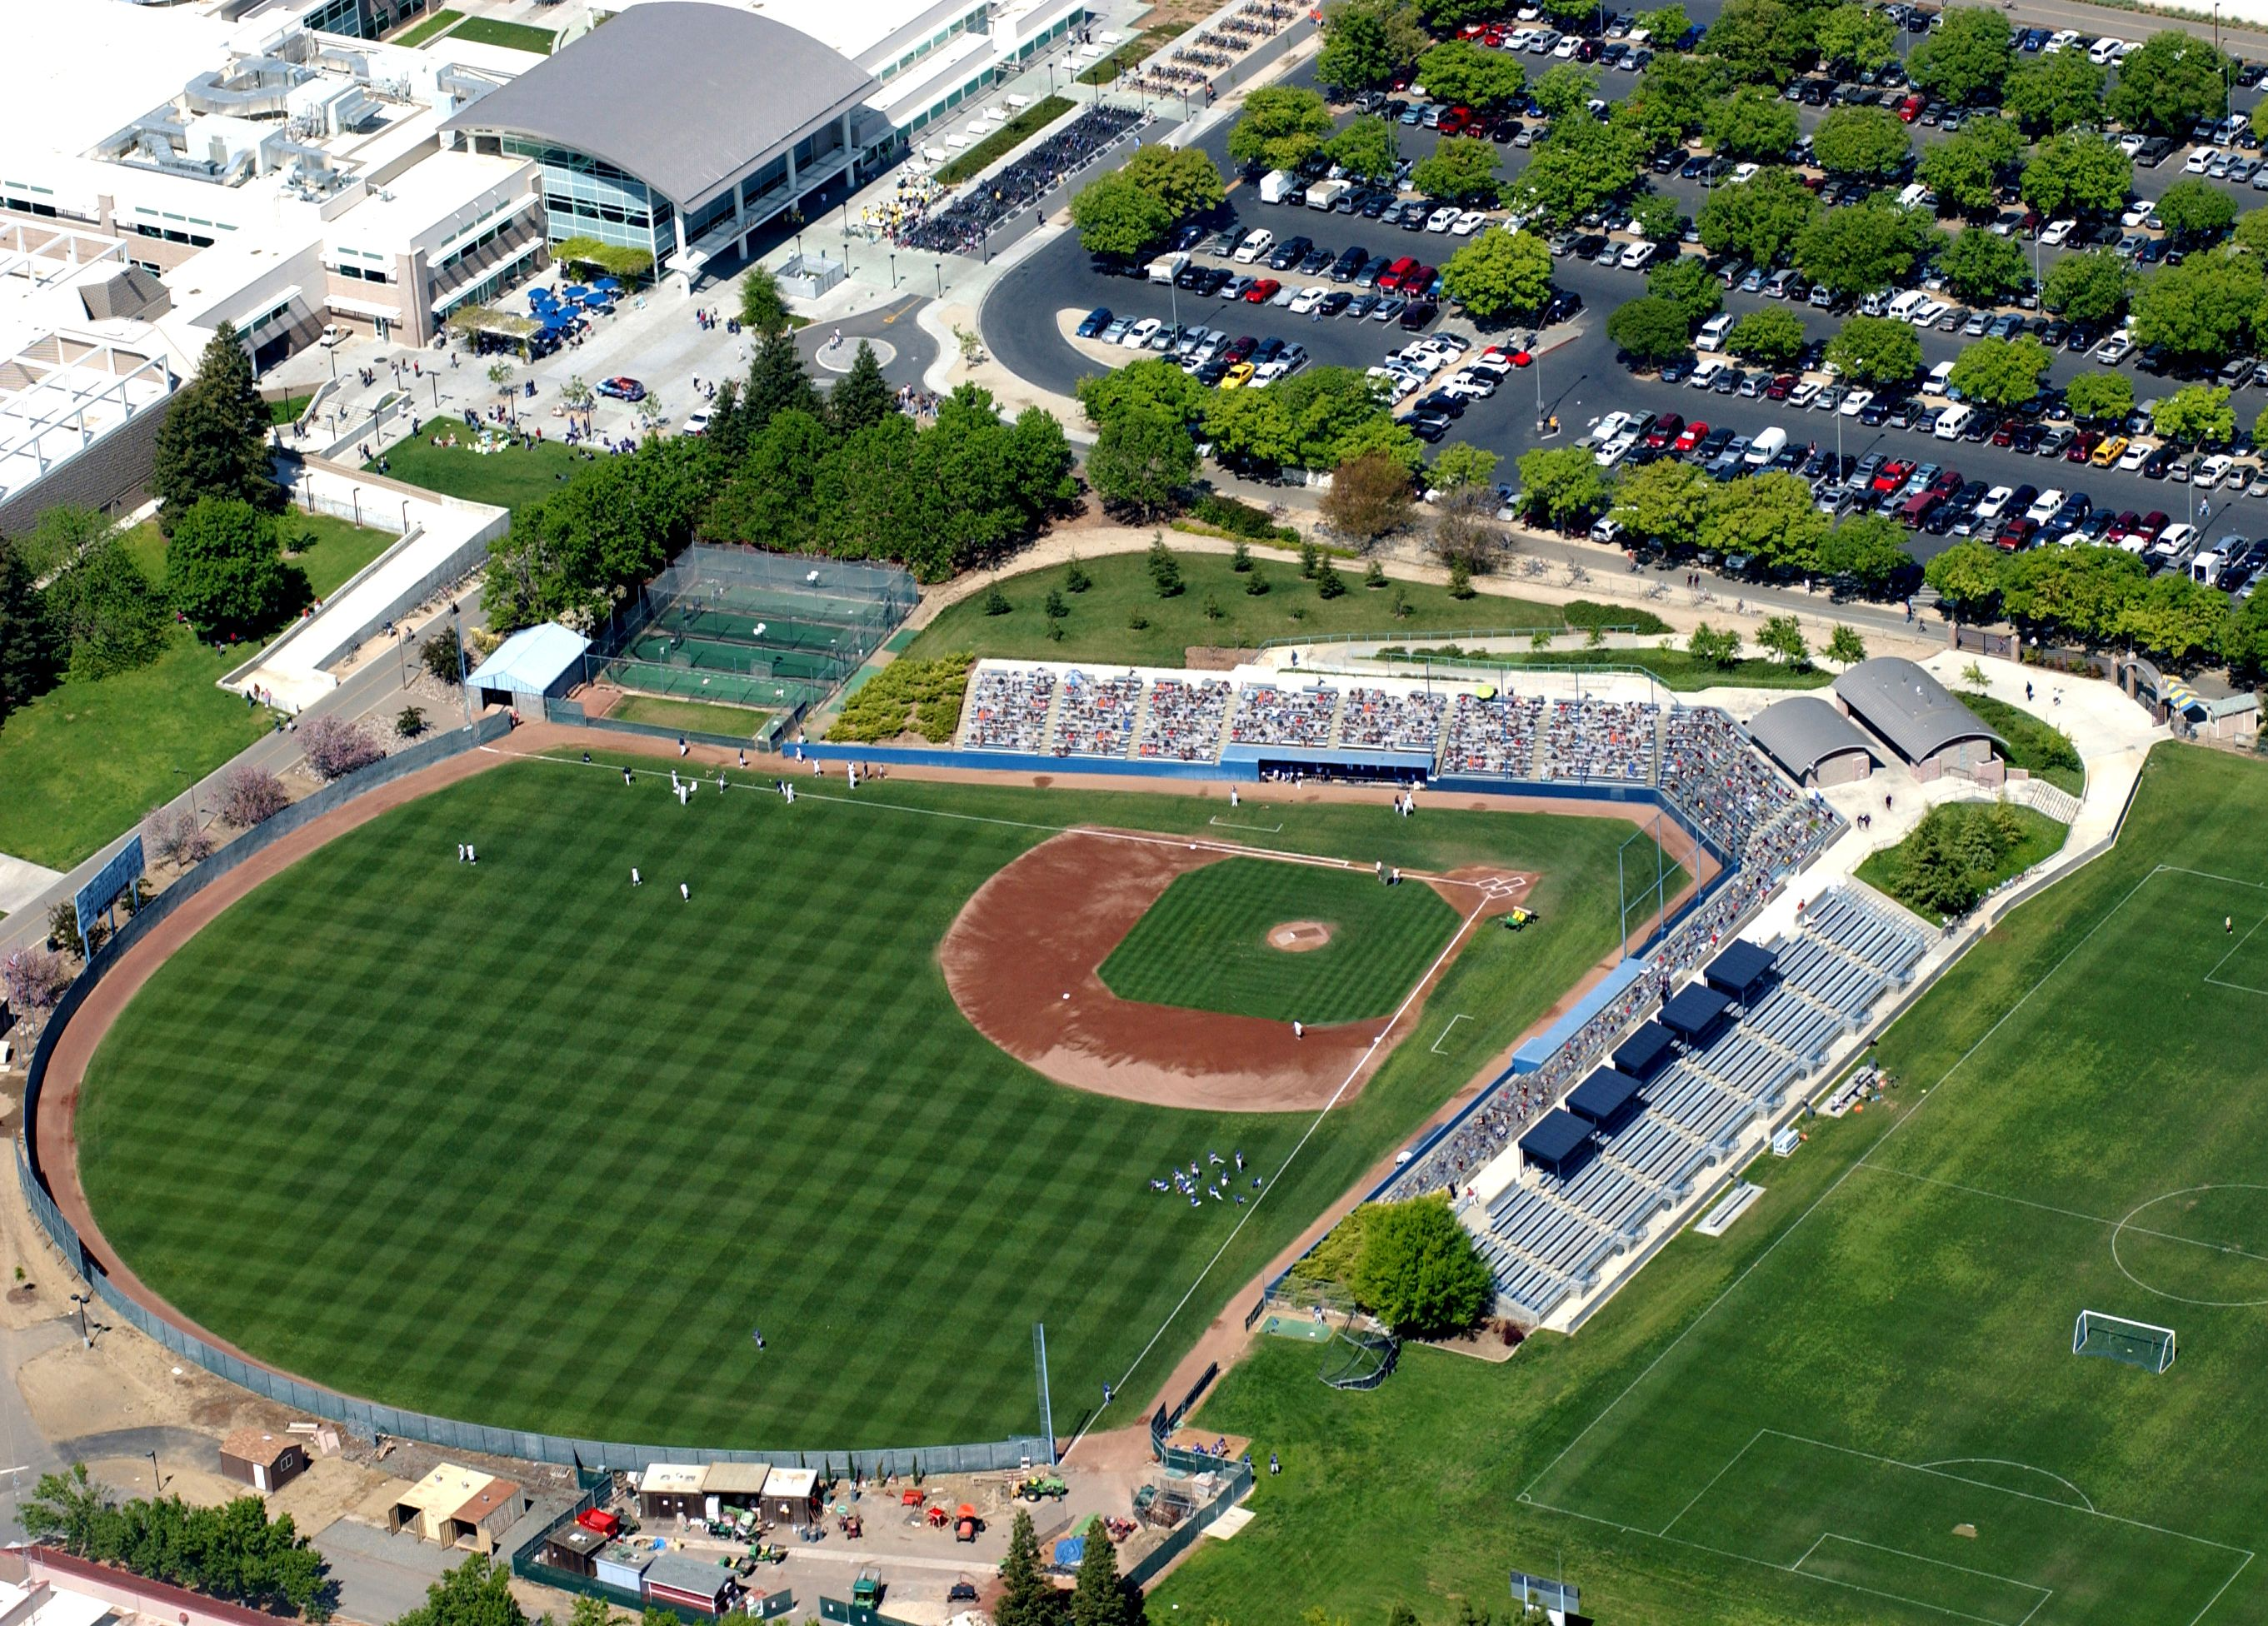 Dobbins Stadium Home Of Aggie Baseball Aggie Baseball Rock Climbing Wall Baseball